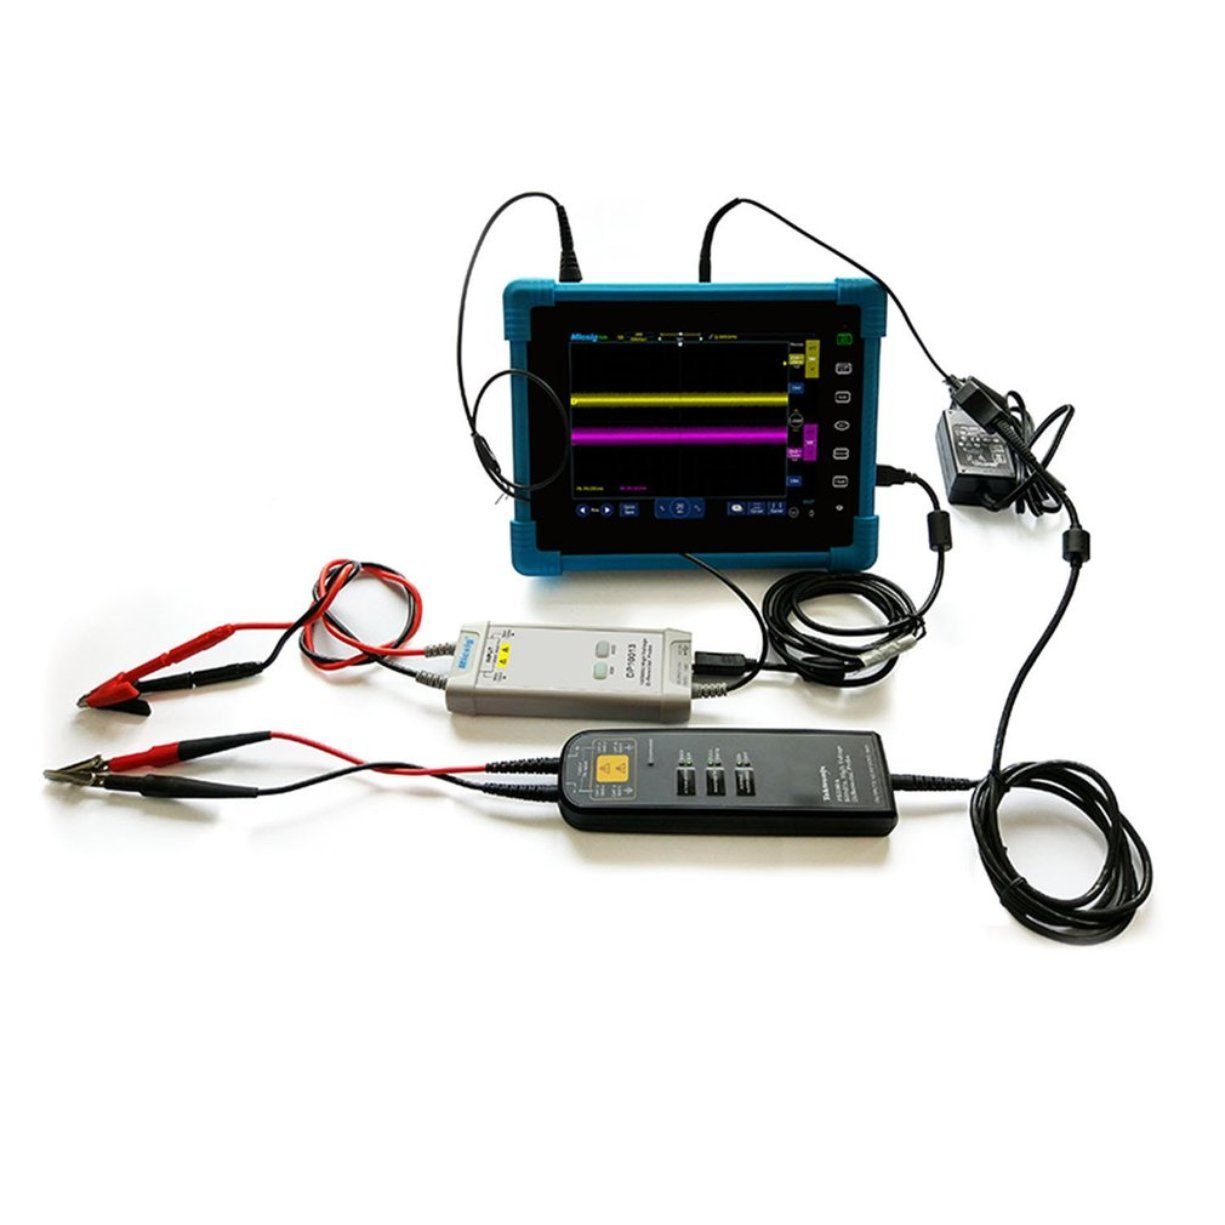 Micsig DP10013 High Voltage Differential Probe 1300V 100MHz 3.5ns Rise Time 50X//500X Attenuation Tektronix P5200A P5205A P5210A